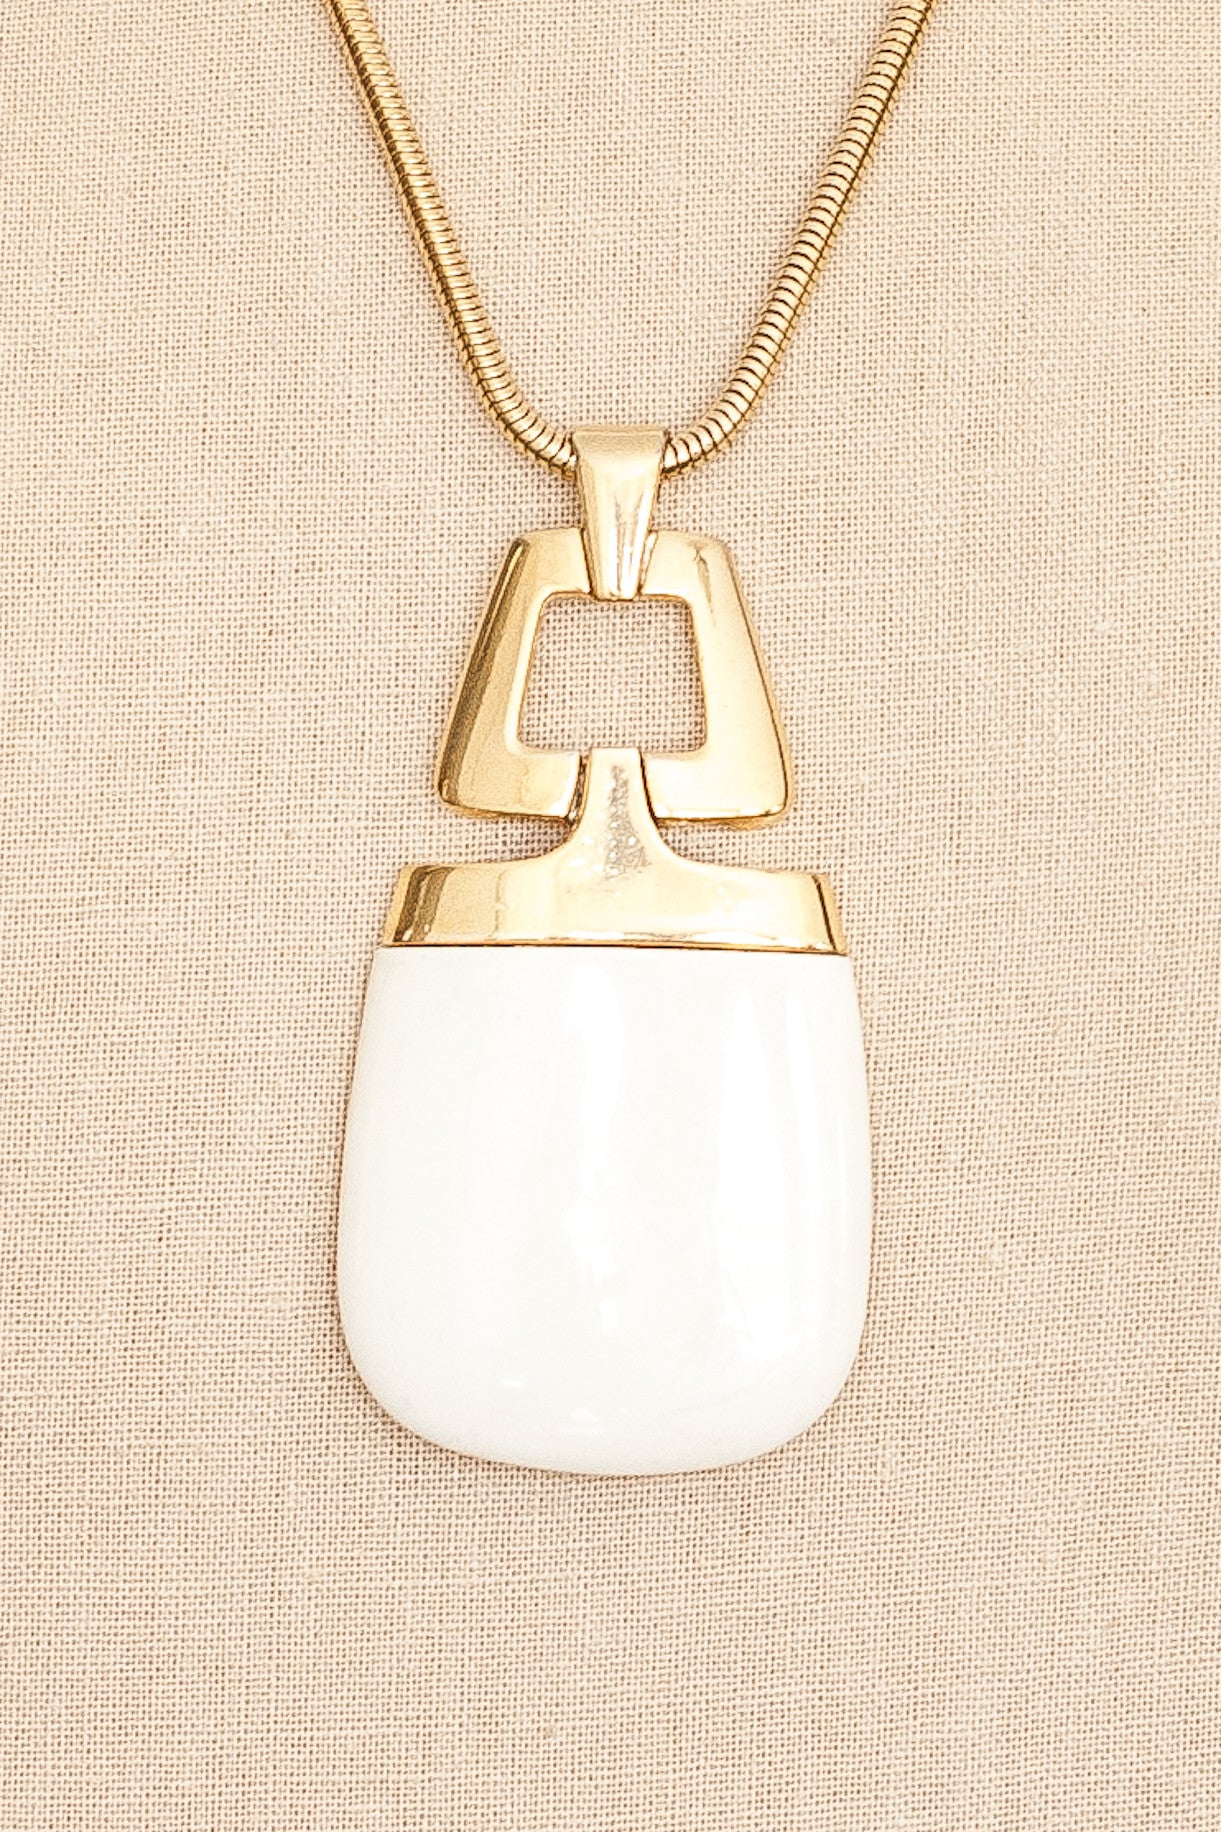 60's__Trifari__Cream Geo Pendant Necklace